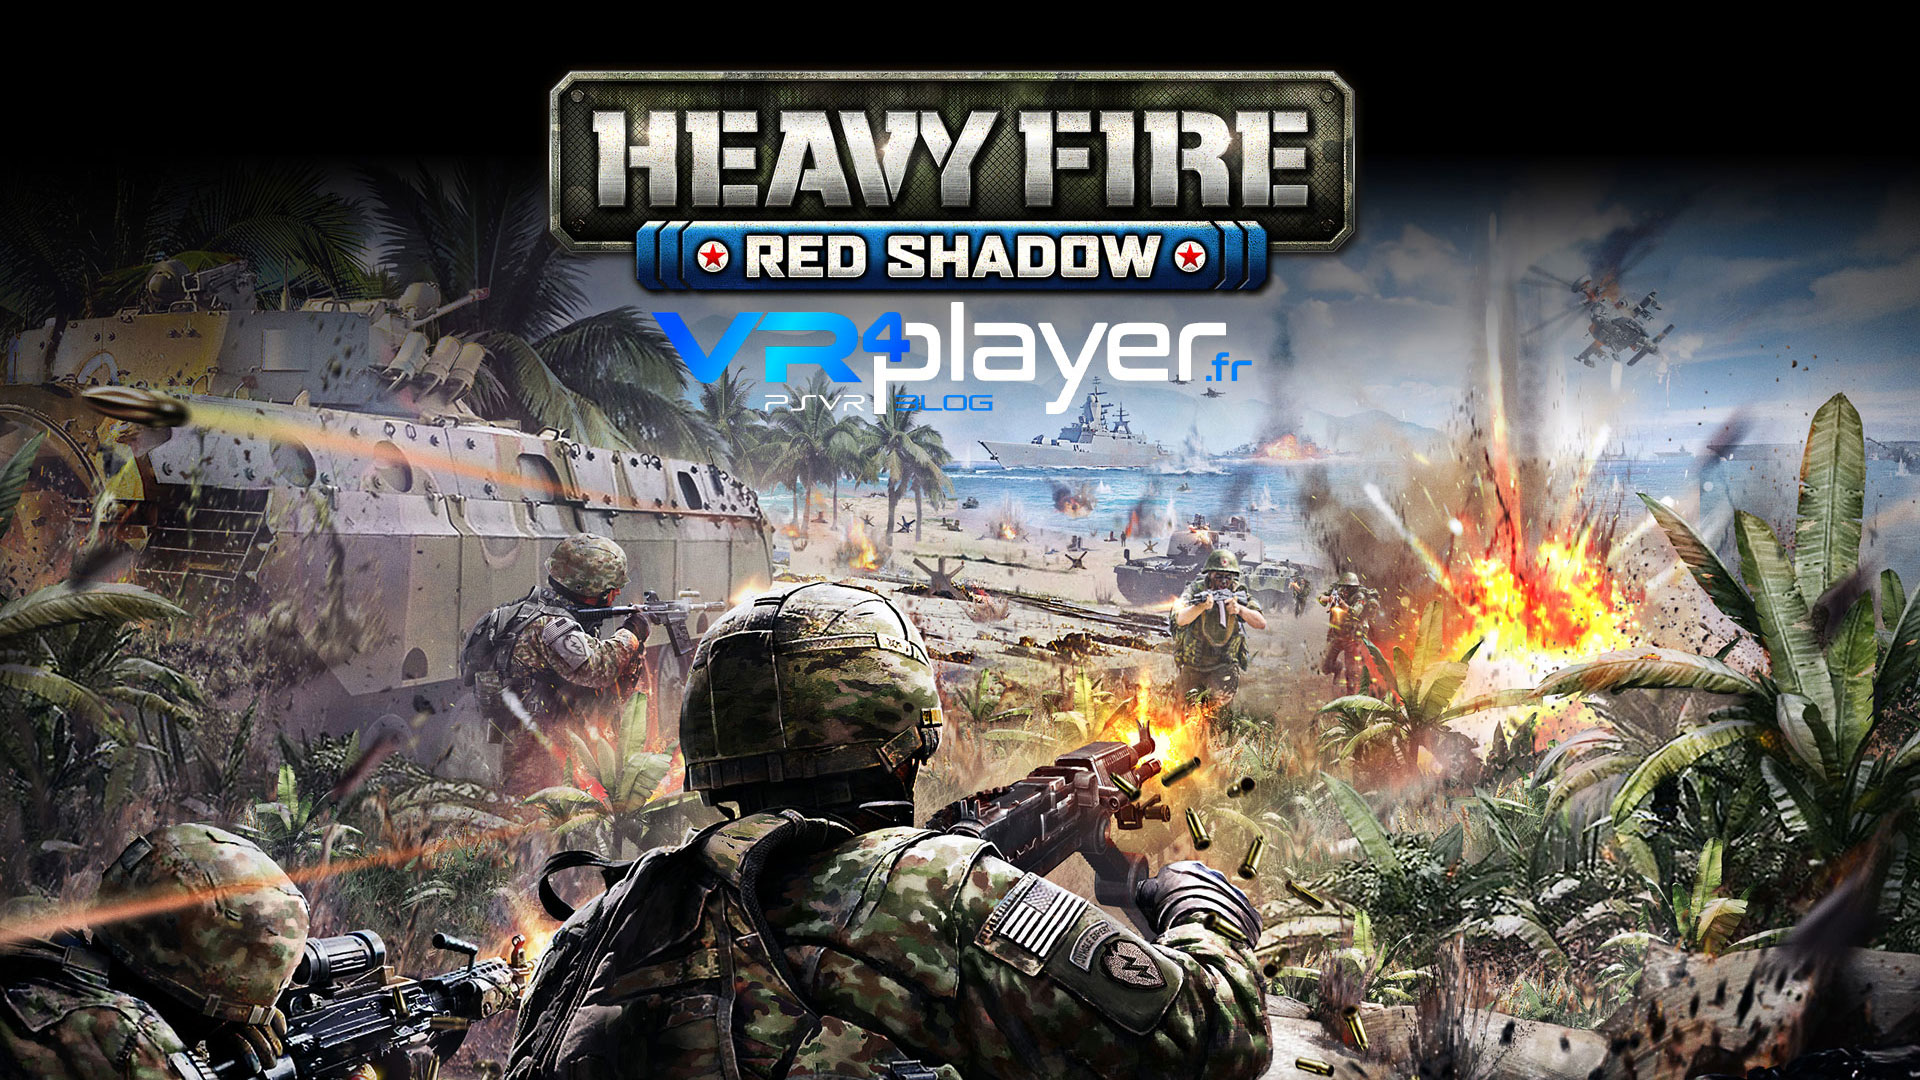 Heavy Fire Red Shadow sur PS4 et PSVR vrplayer.fr